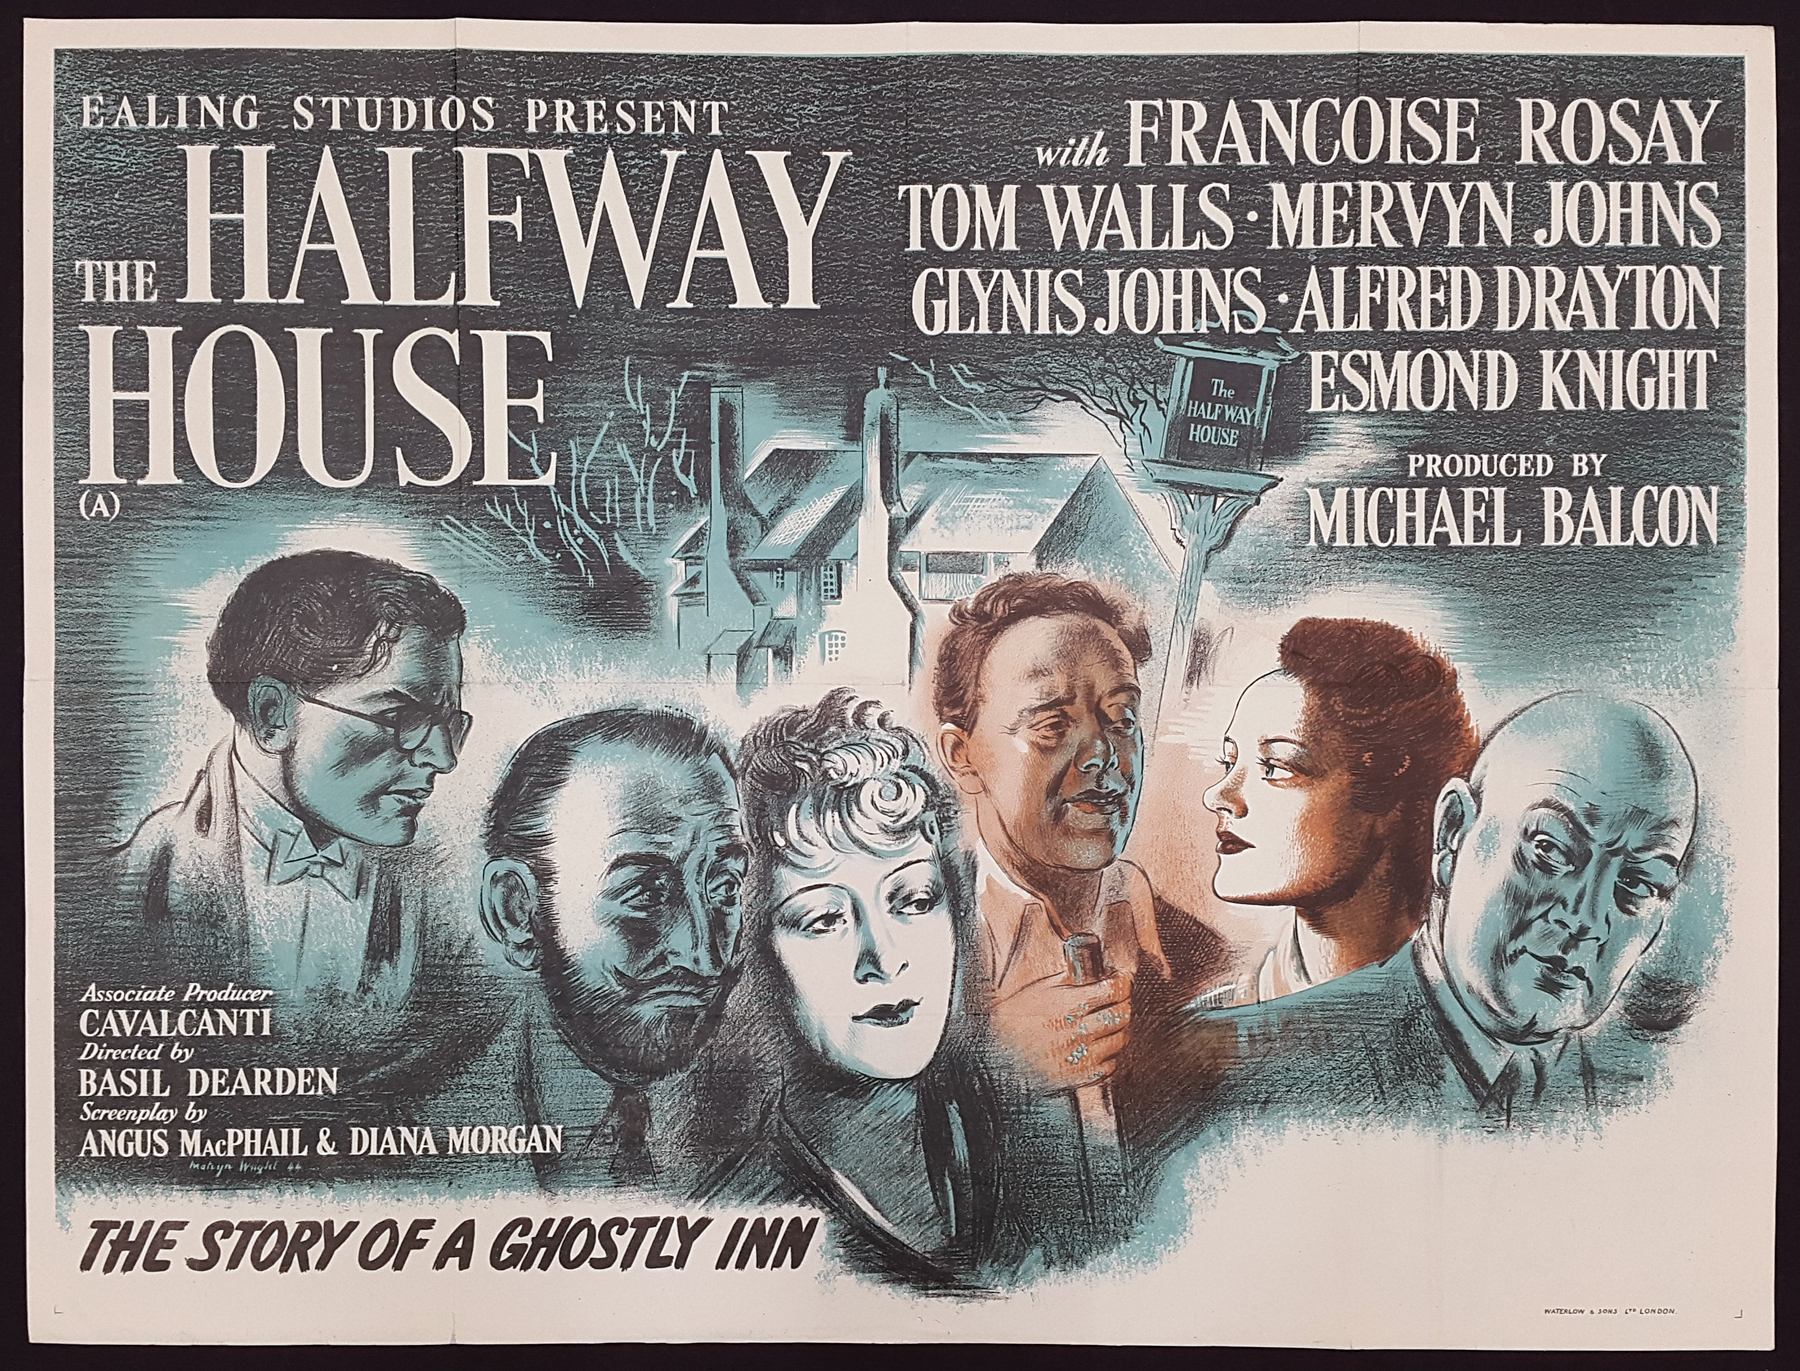 The Halfway House (1944) UK poster